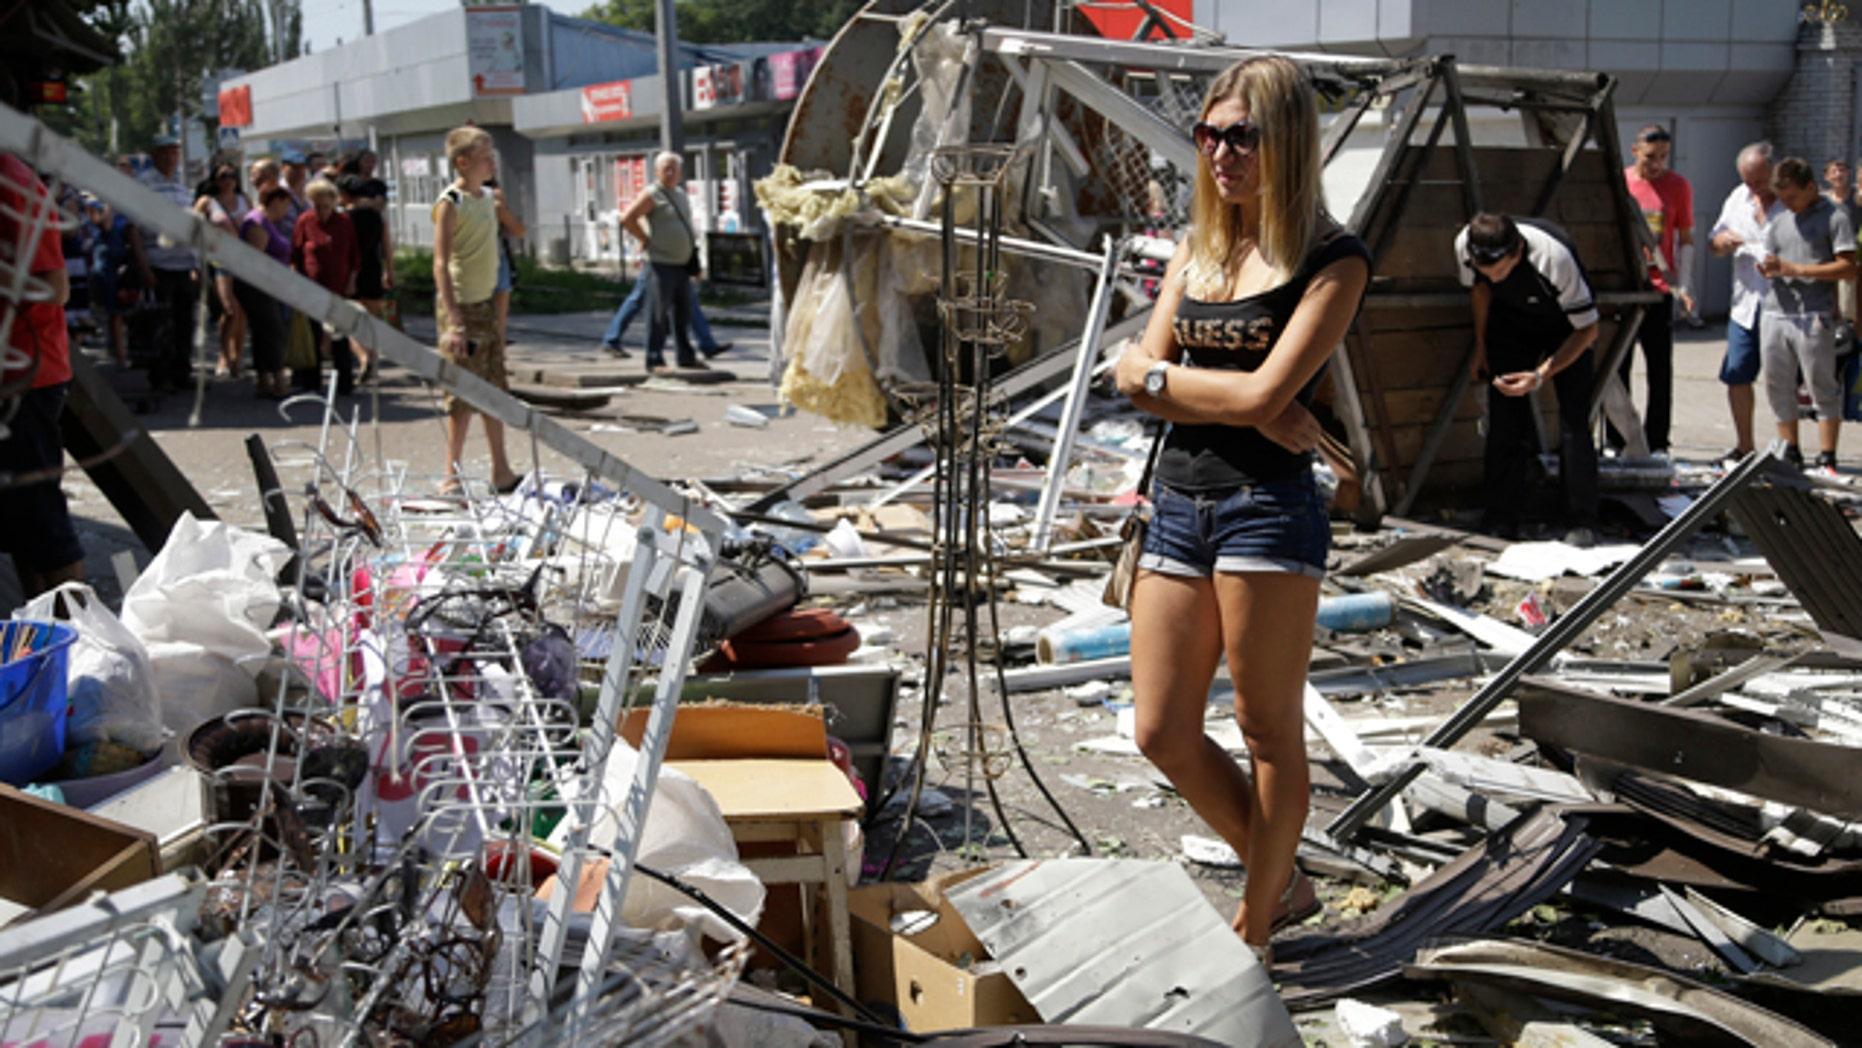 August 6, 2014: Residents inspect the damage after night shelling on a market in Donetsk, eastern Ukraine. Airstrikes and artillery fire between pro-Russian separatists and Ukrainian troops have brought the violence closer than ever to the city center, as Kiev's forces move in on the rebel stronghold. (AP Photo/Sergei Grits)